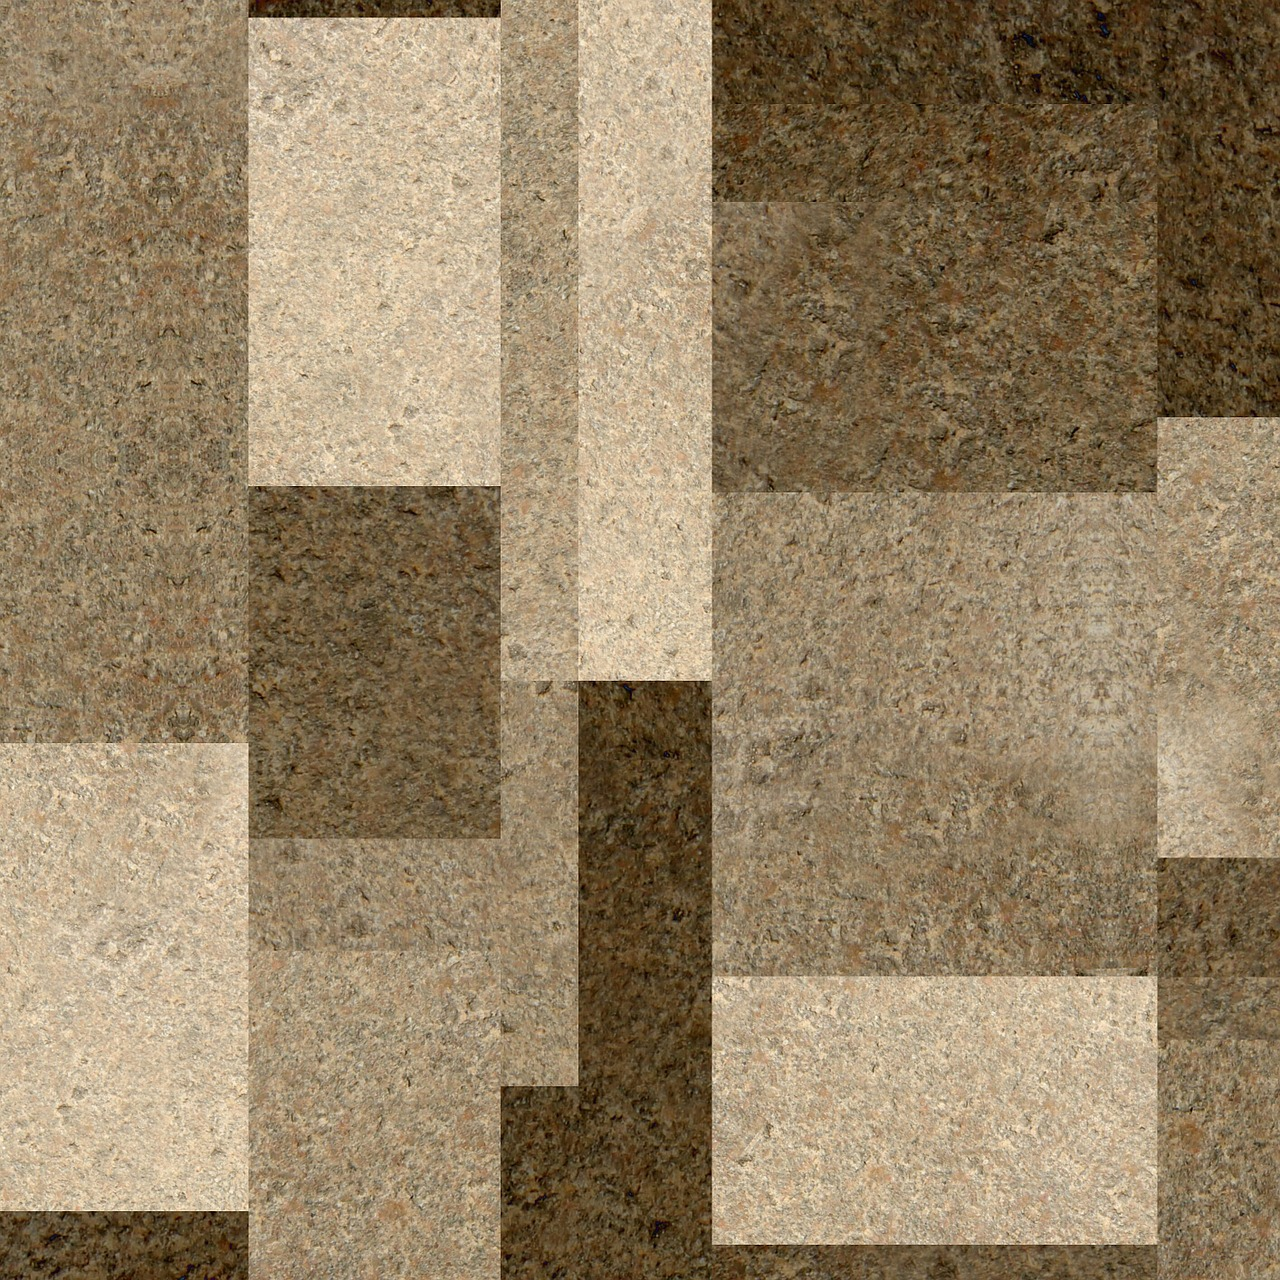 rectangles fragment background image free photo